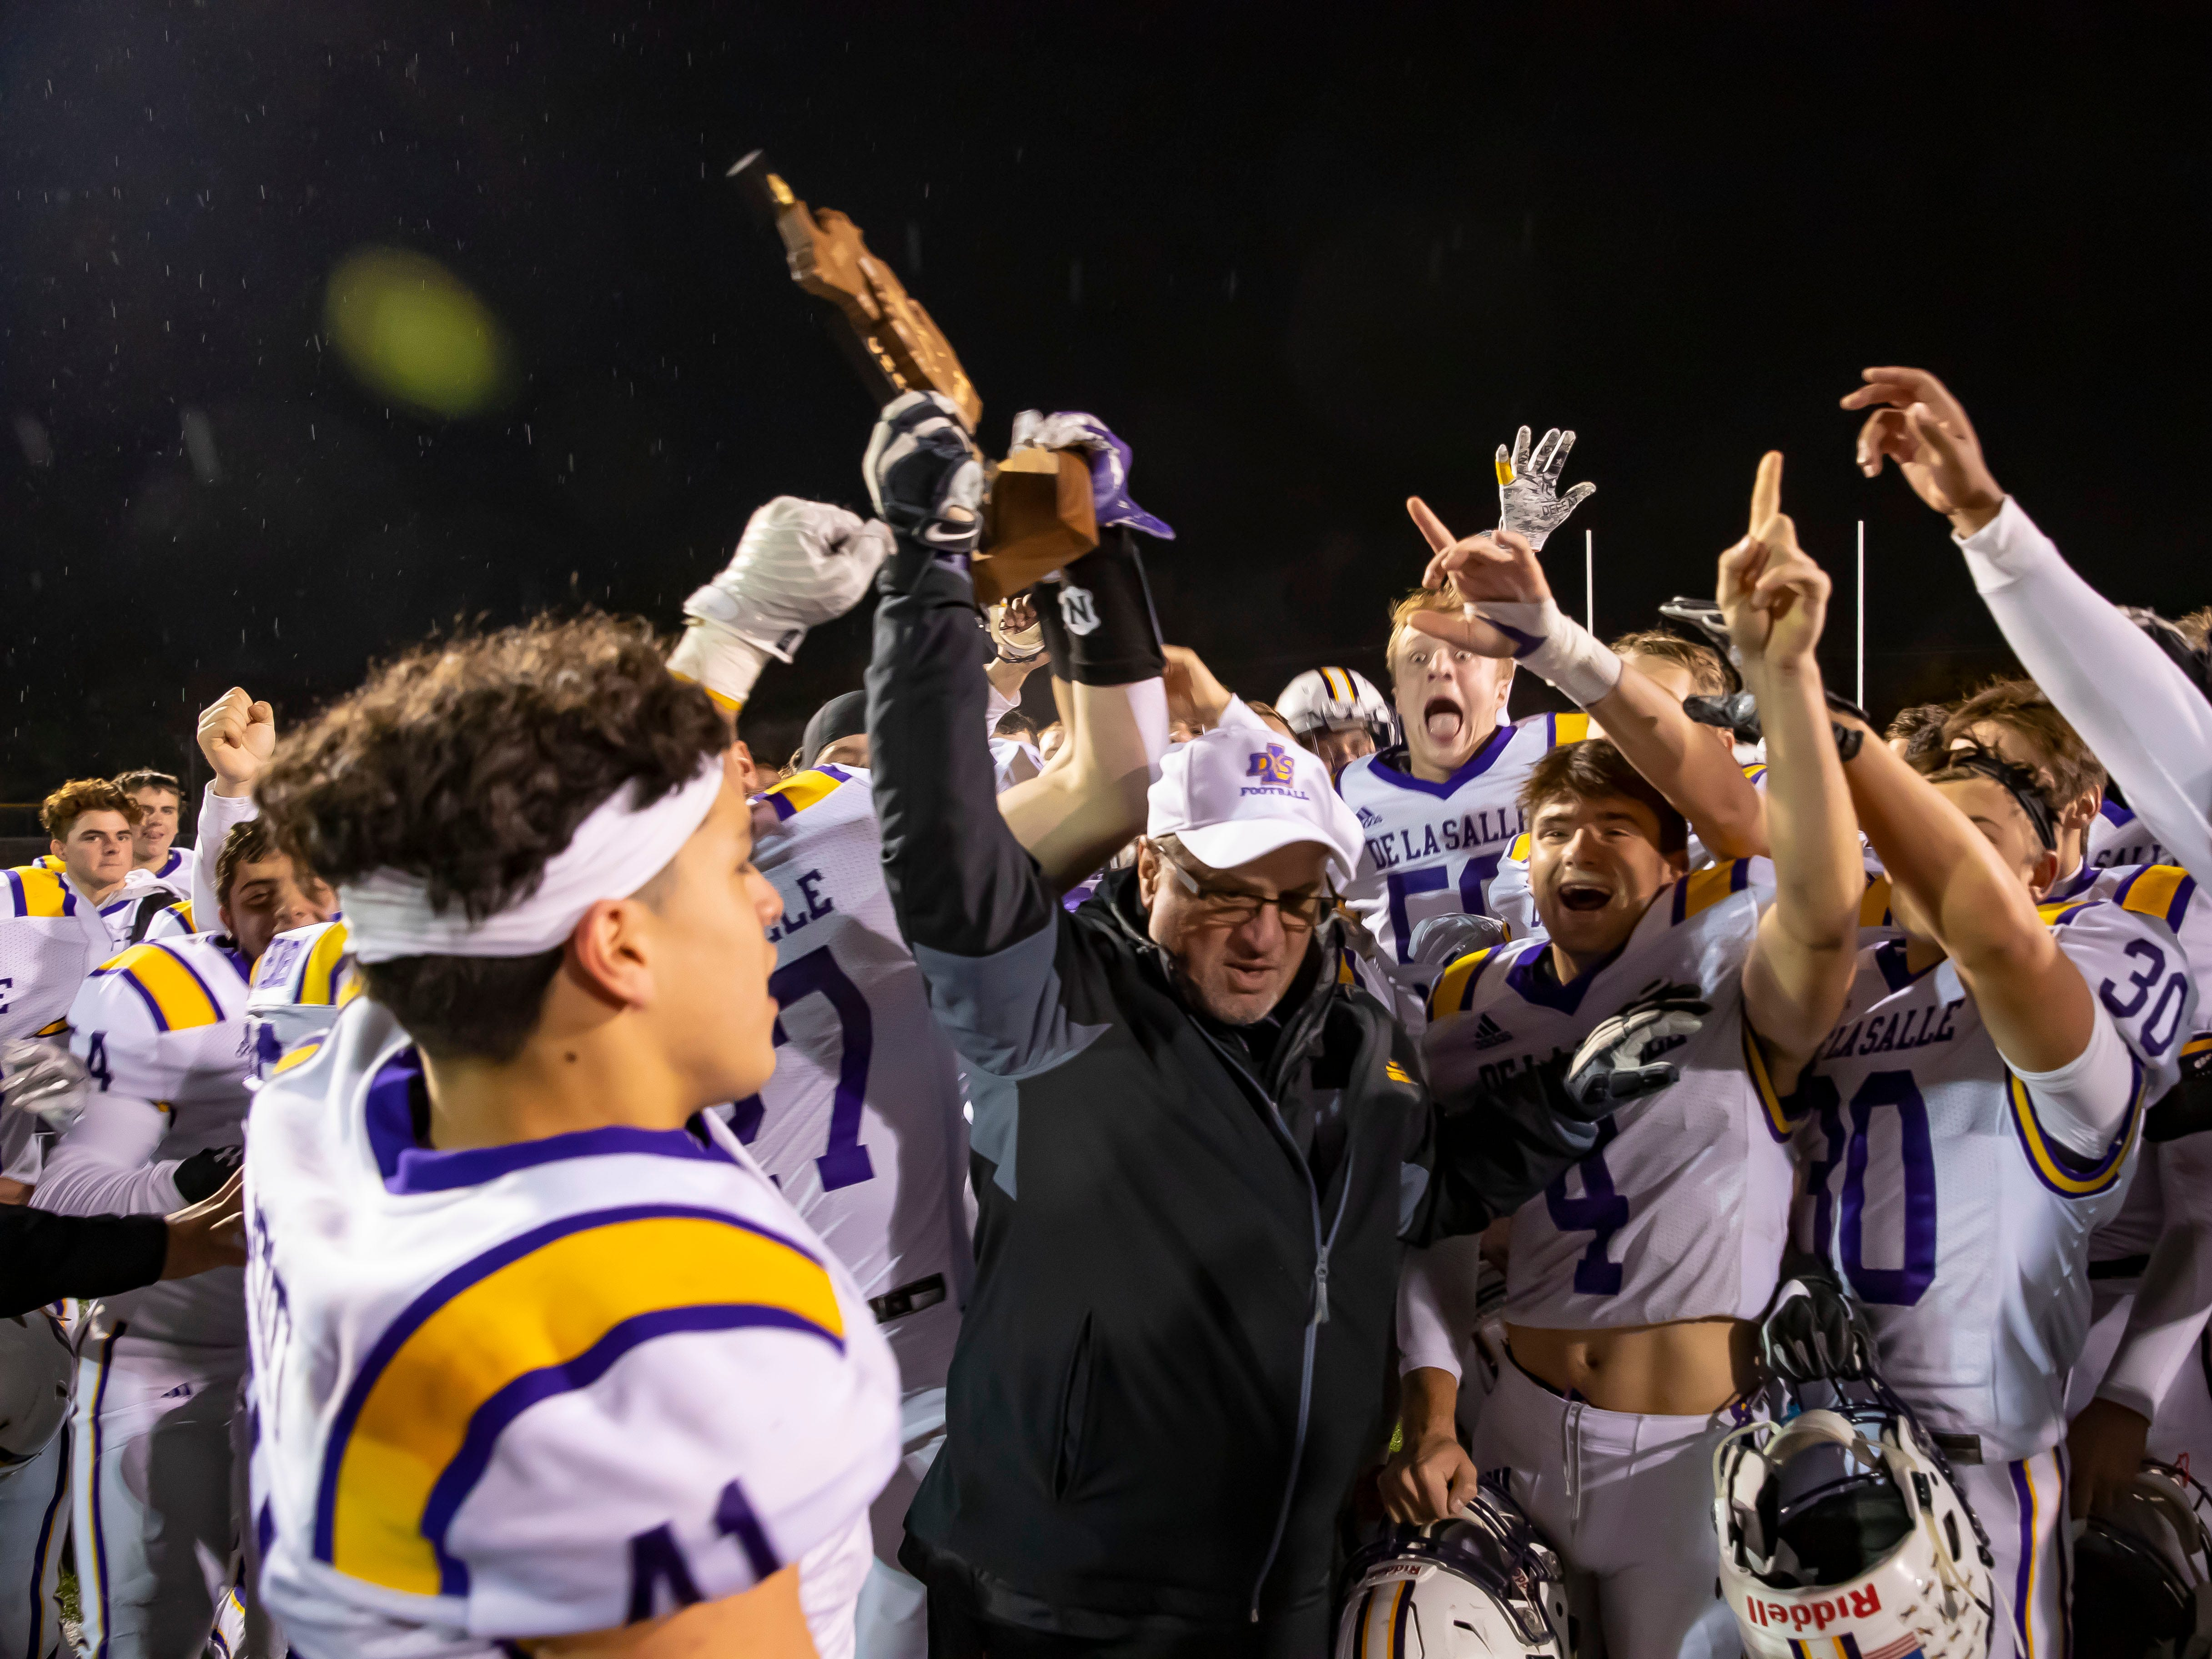 Warren De La Salle head coach Mike Giannone holds up the championship trophy in front of his team after they defeated Oak Park 35-7.